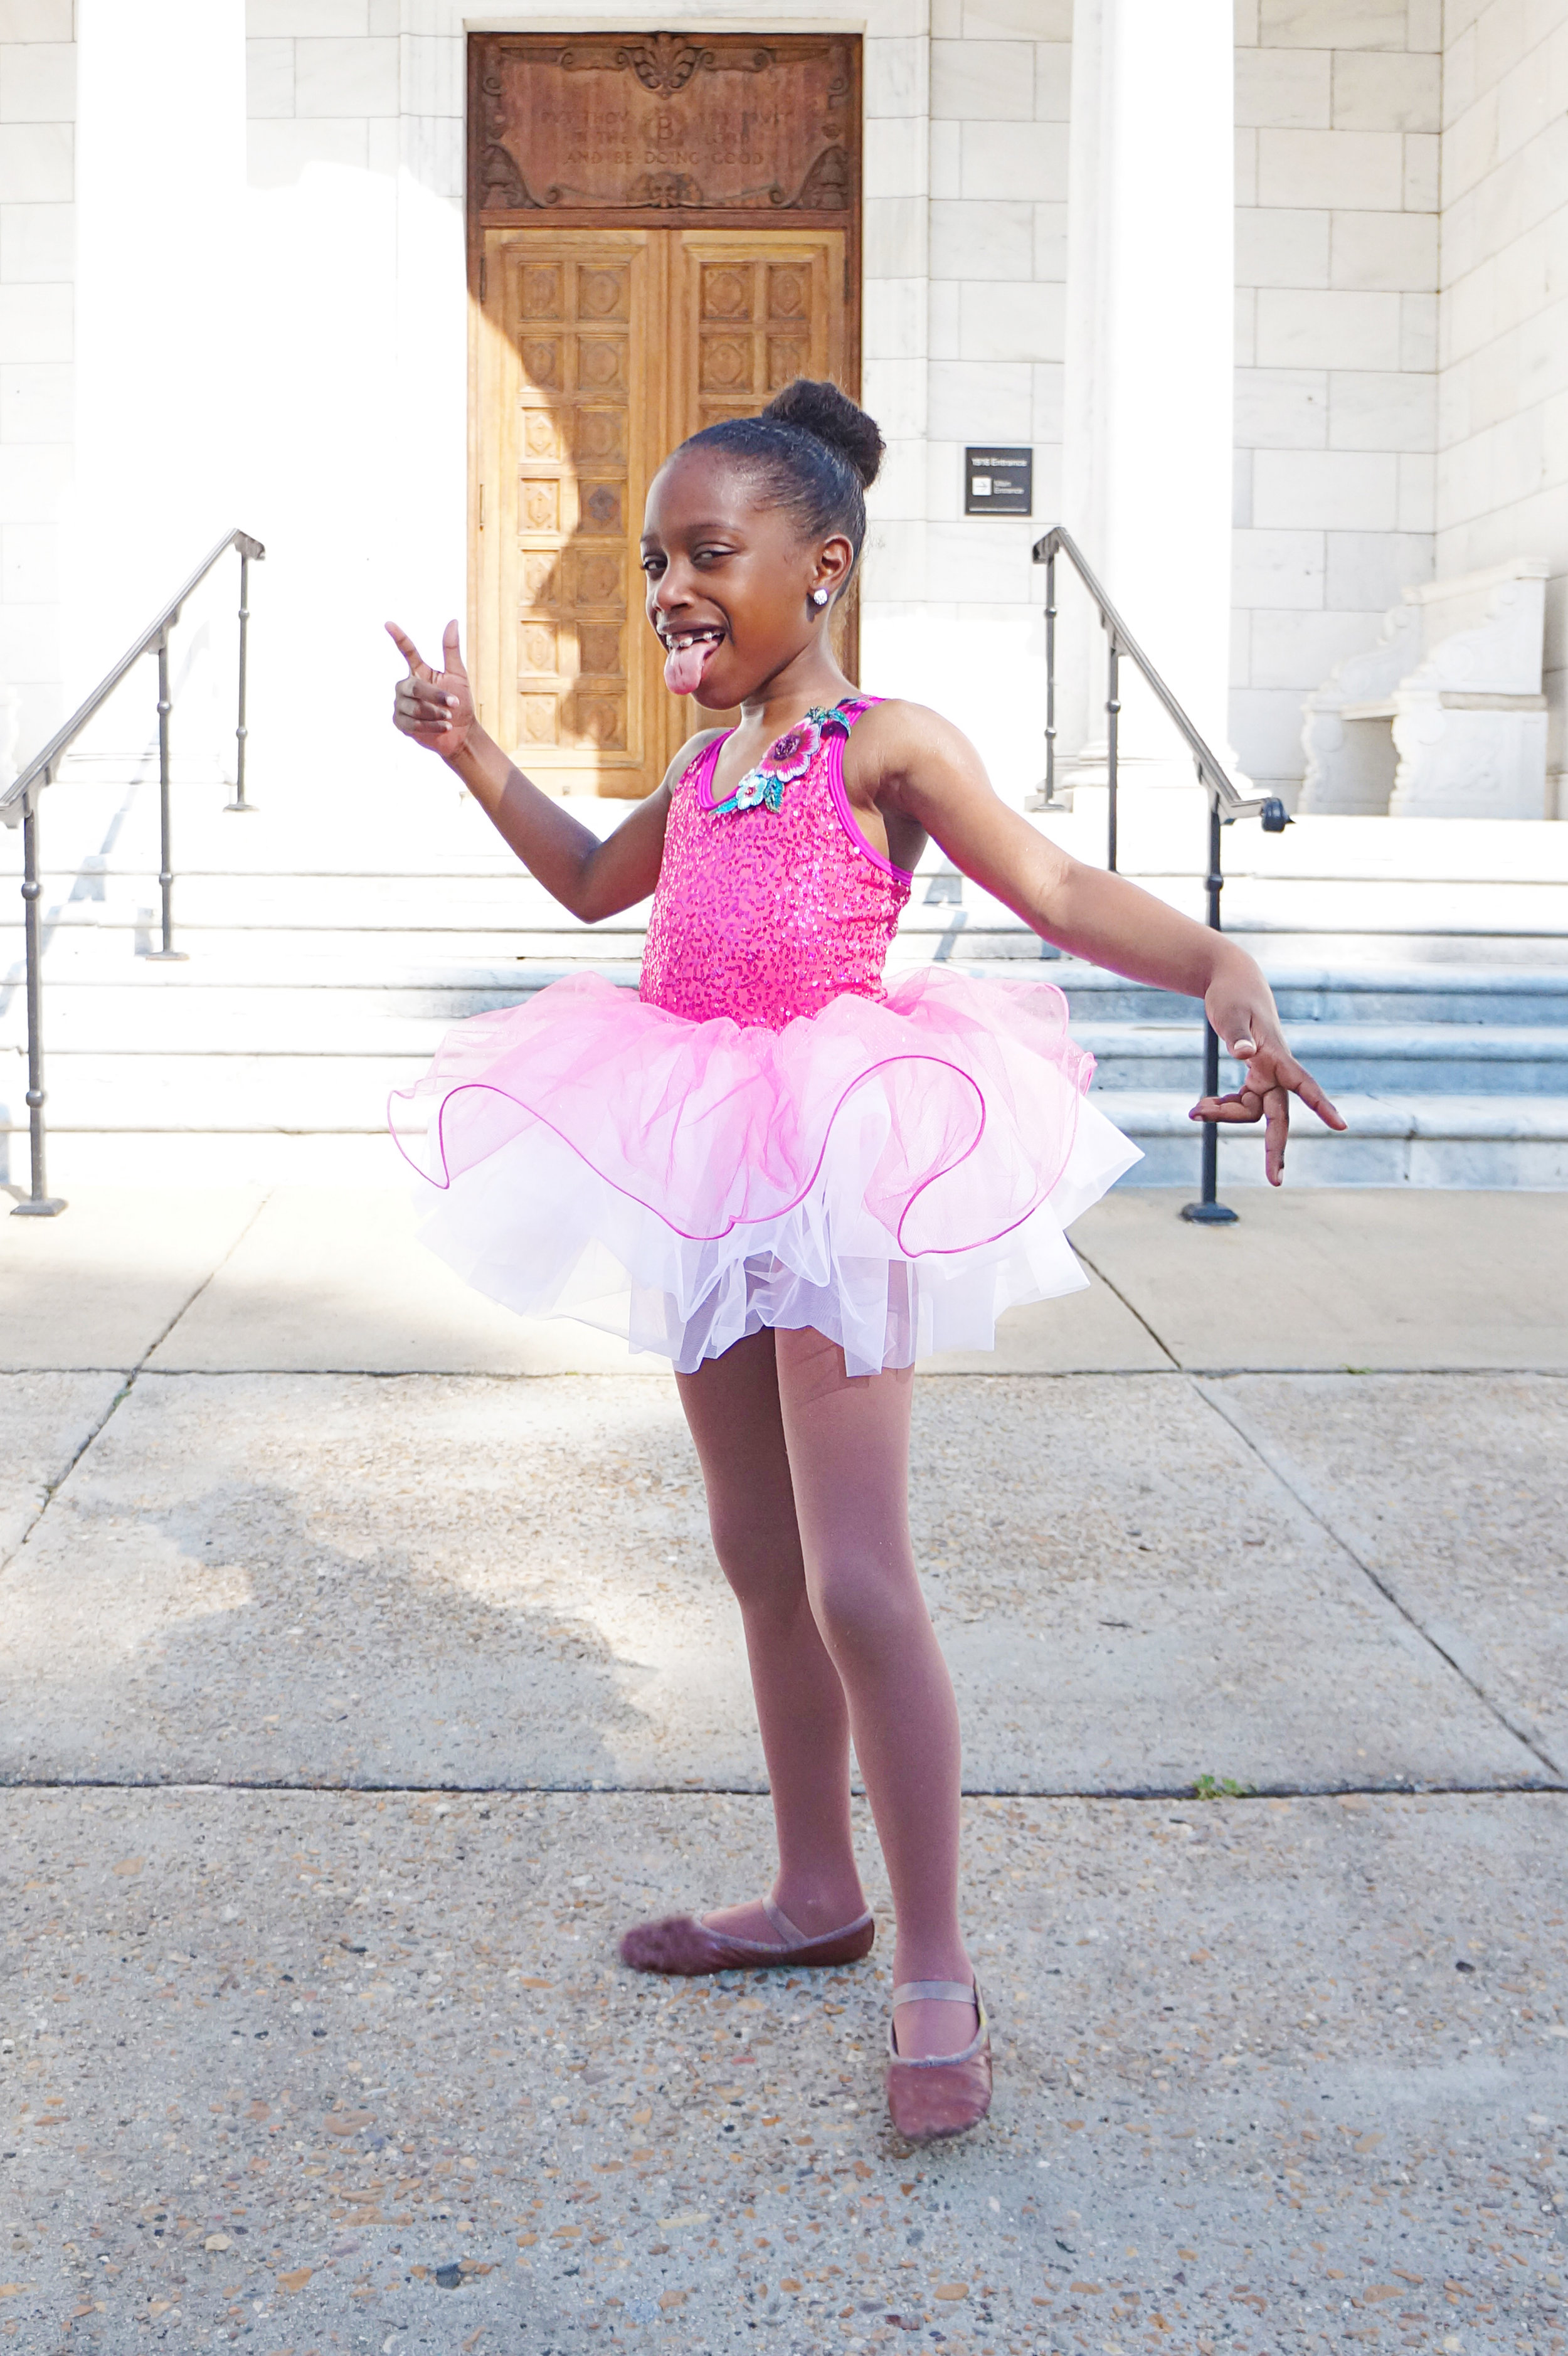 Andrea Fenise Memphis Fashion Blogger shares photo shoot and ad design with her daughter